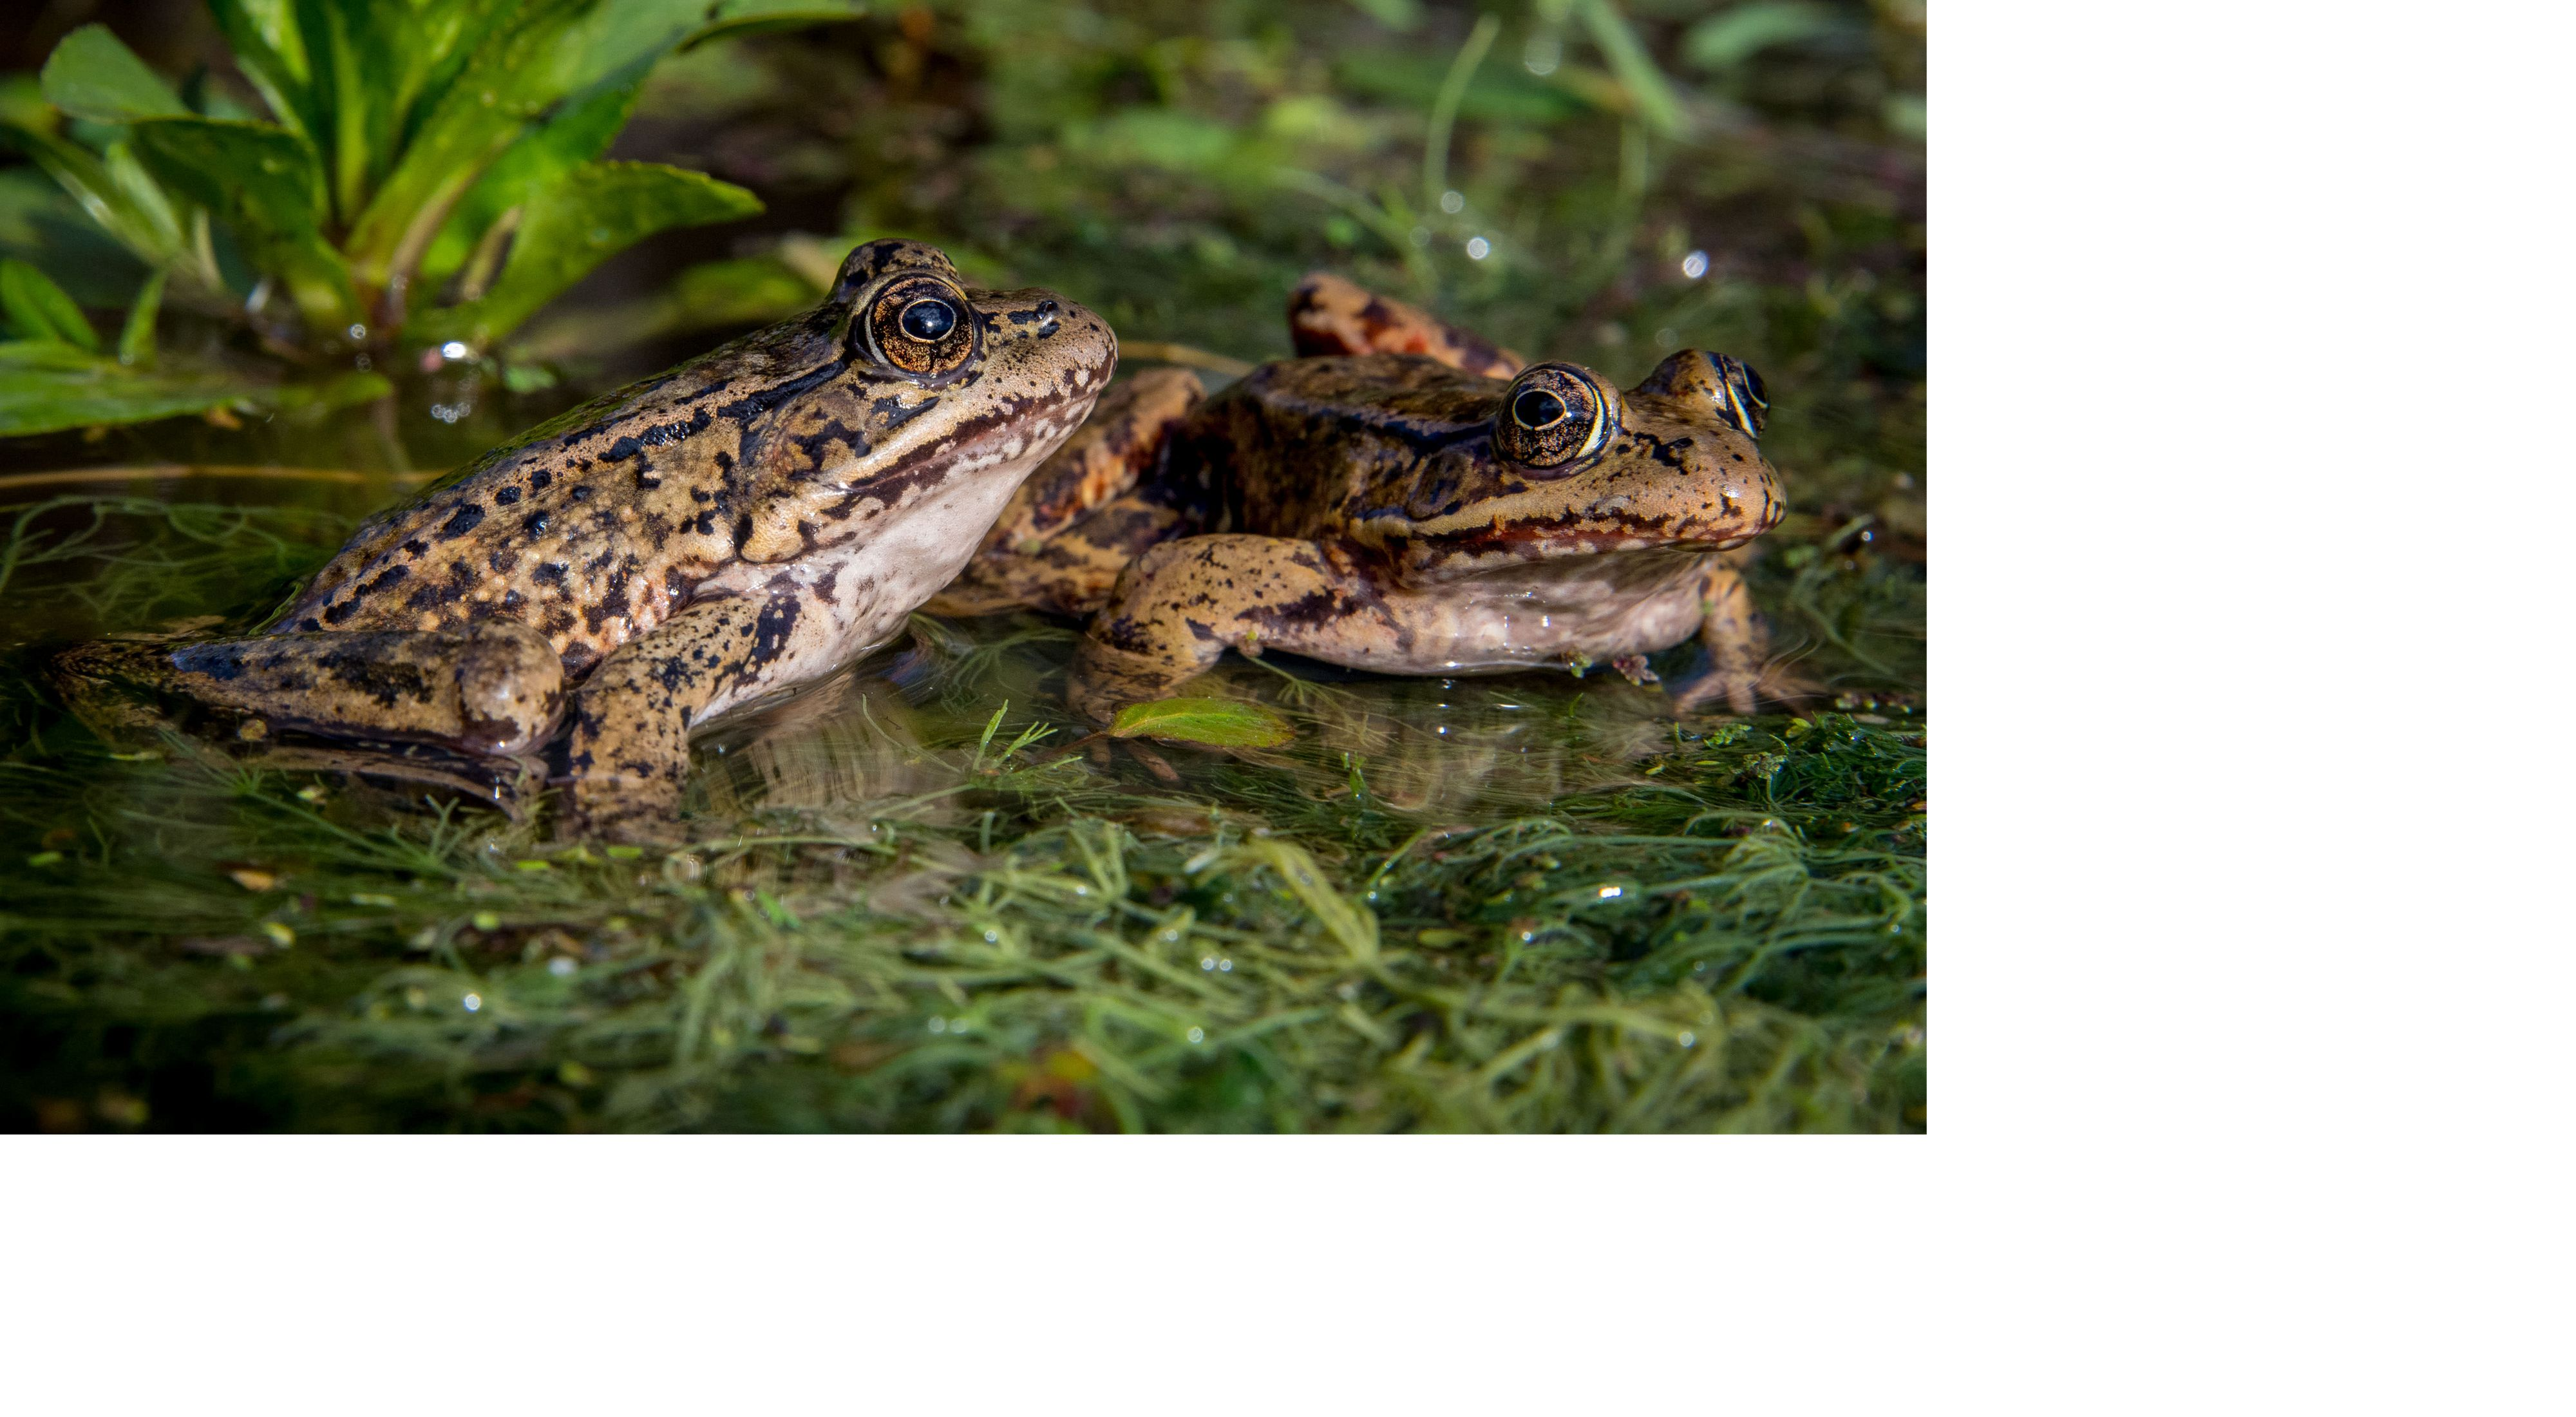 Adult male and female California red-legged frogs from the source population in Baja California, México.